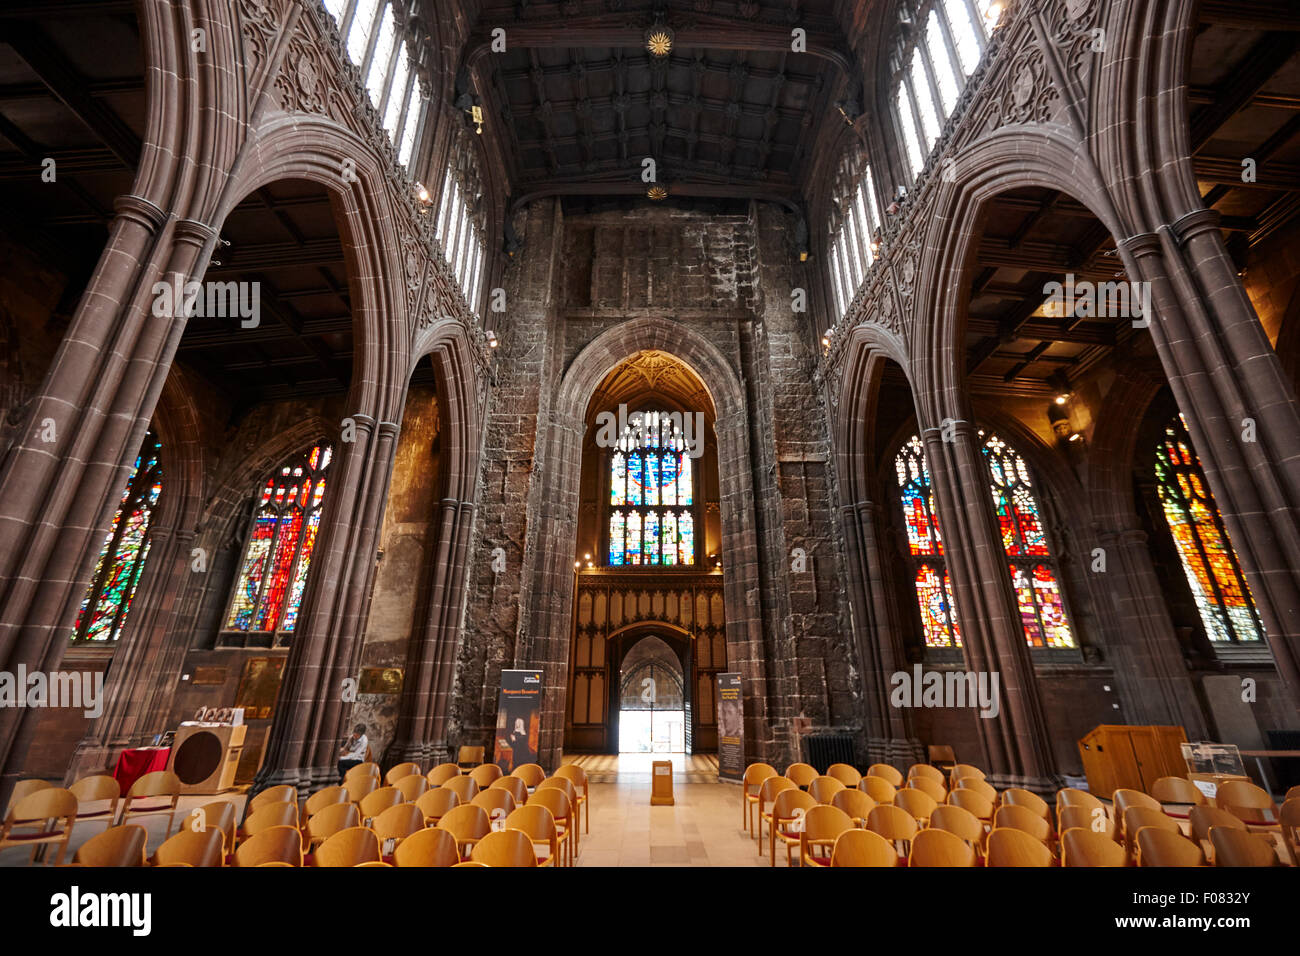 Manchester cathedral uk - Stock Image